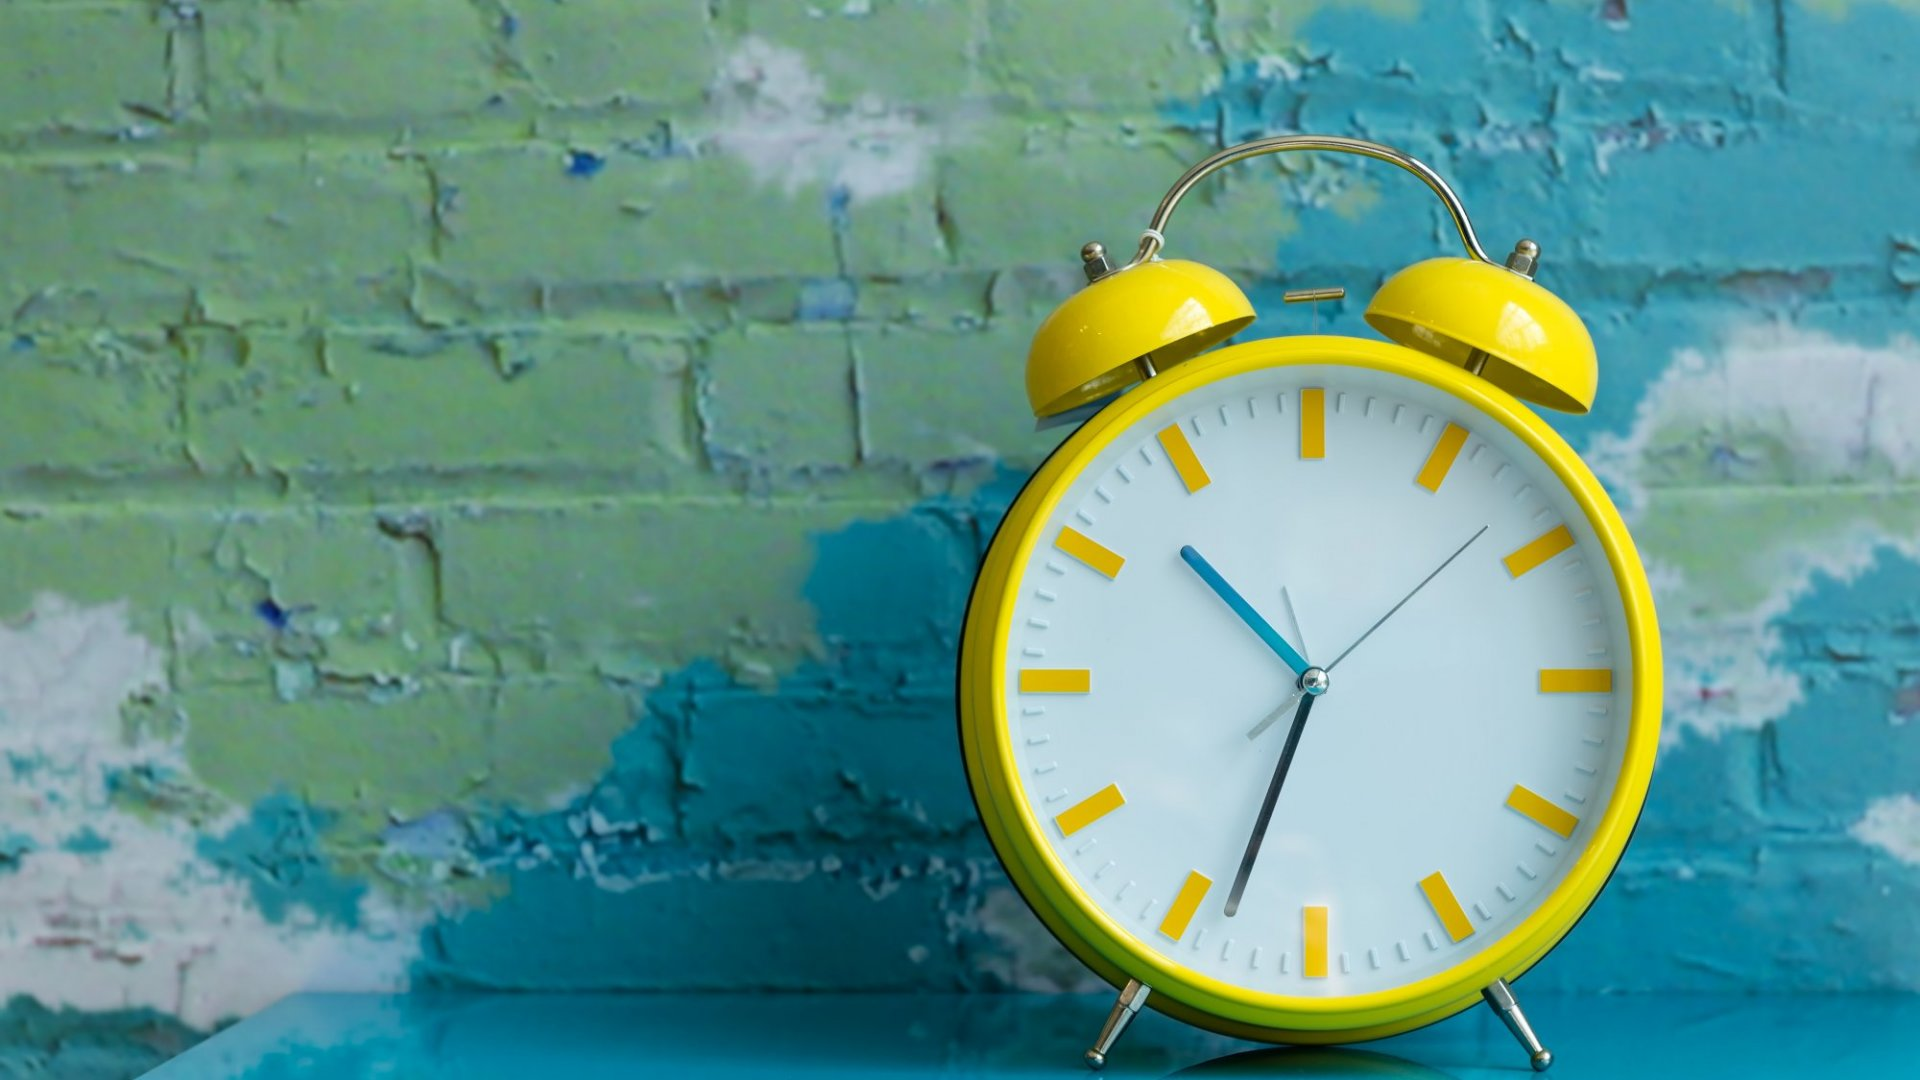 How to Buy Time After Receiving a Job Offer You're Not Totally Sold On